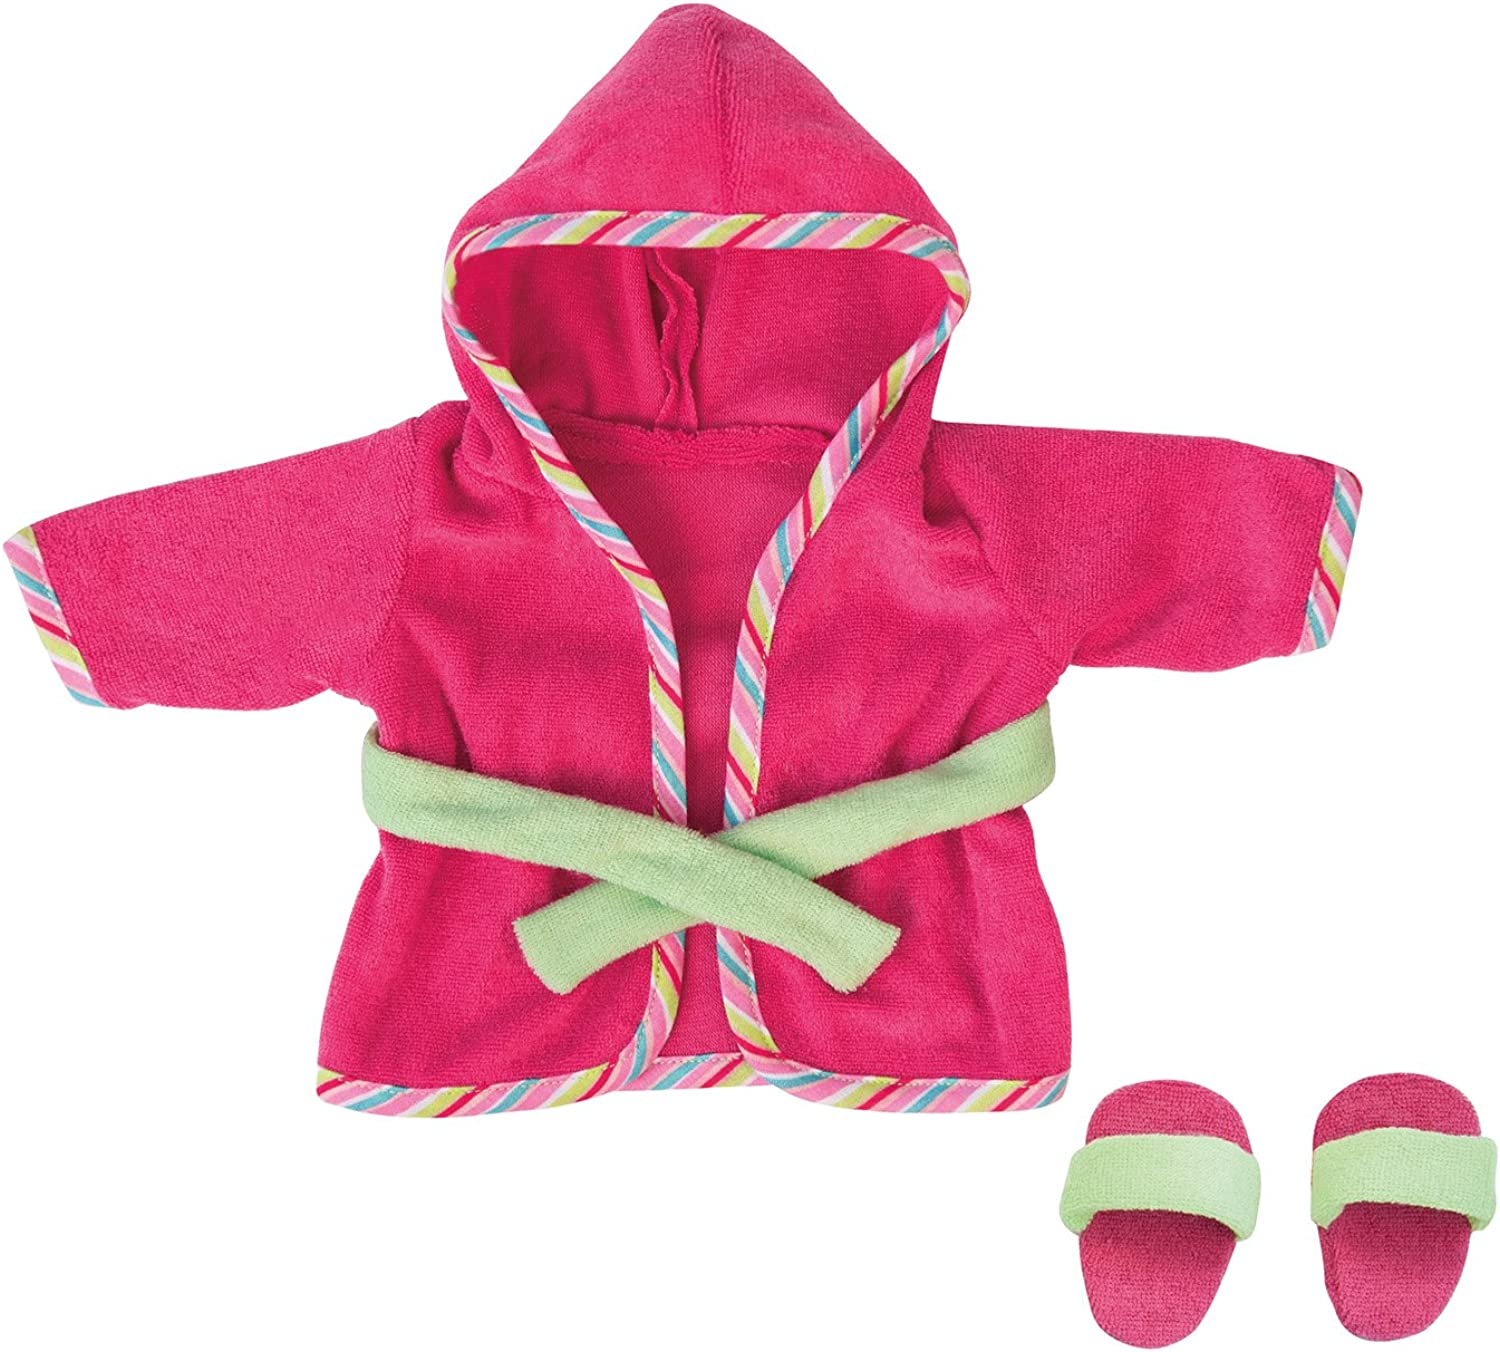 Bayer 30cm Deluxe Dress Set Bathrobe Design with Slippers (Pink Green)